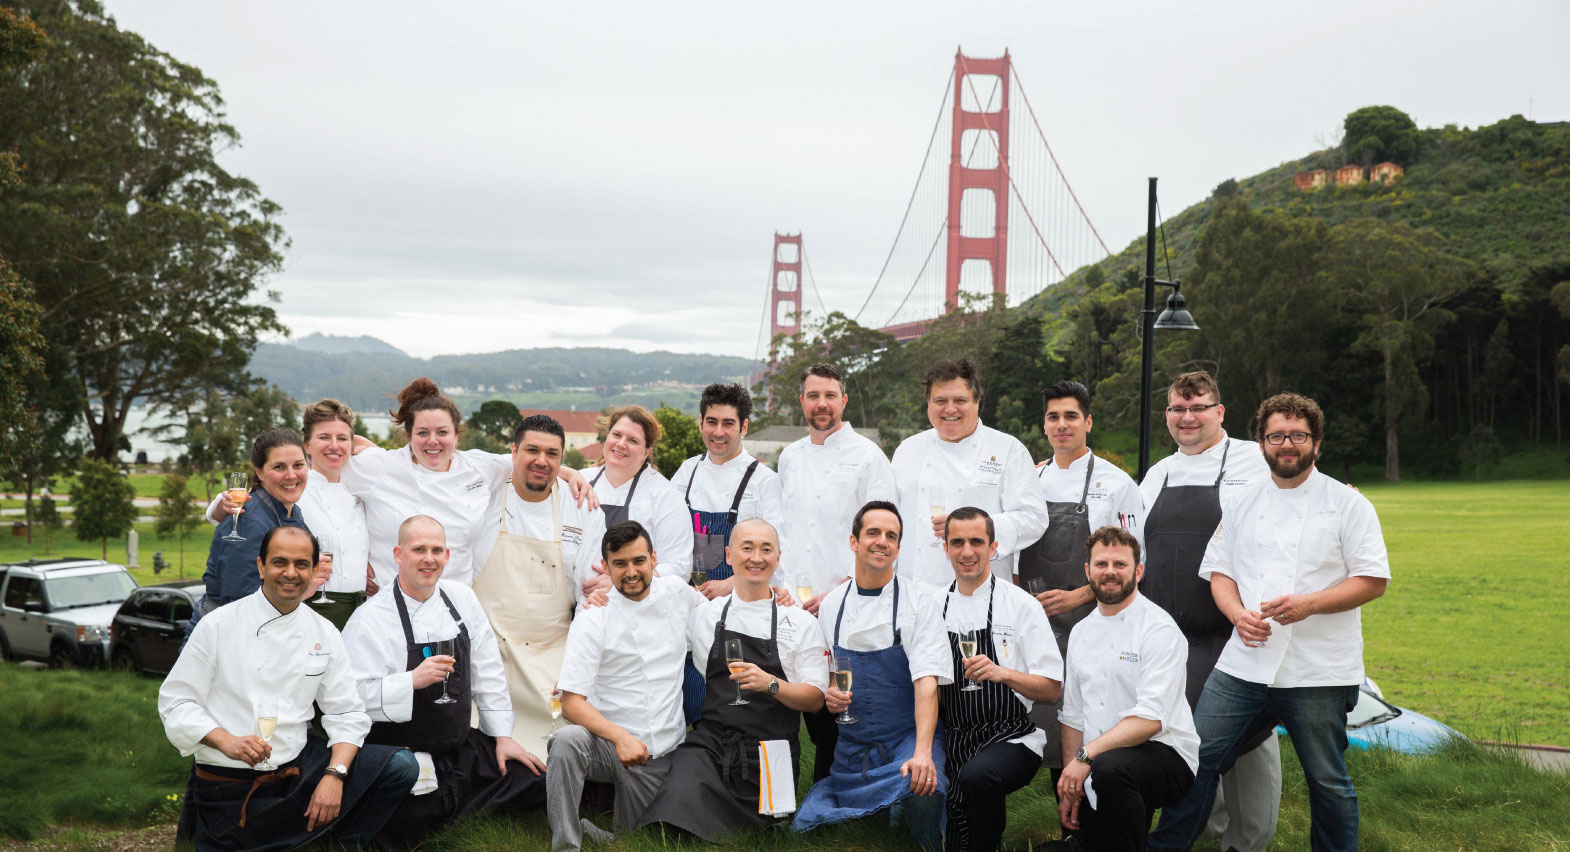 Chefs at last year's Lexus Culinary Classic